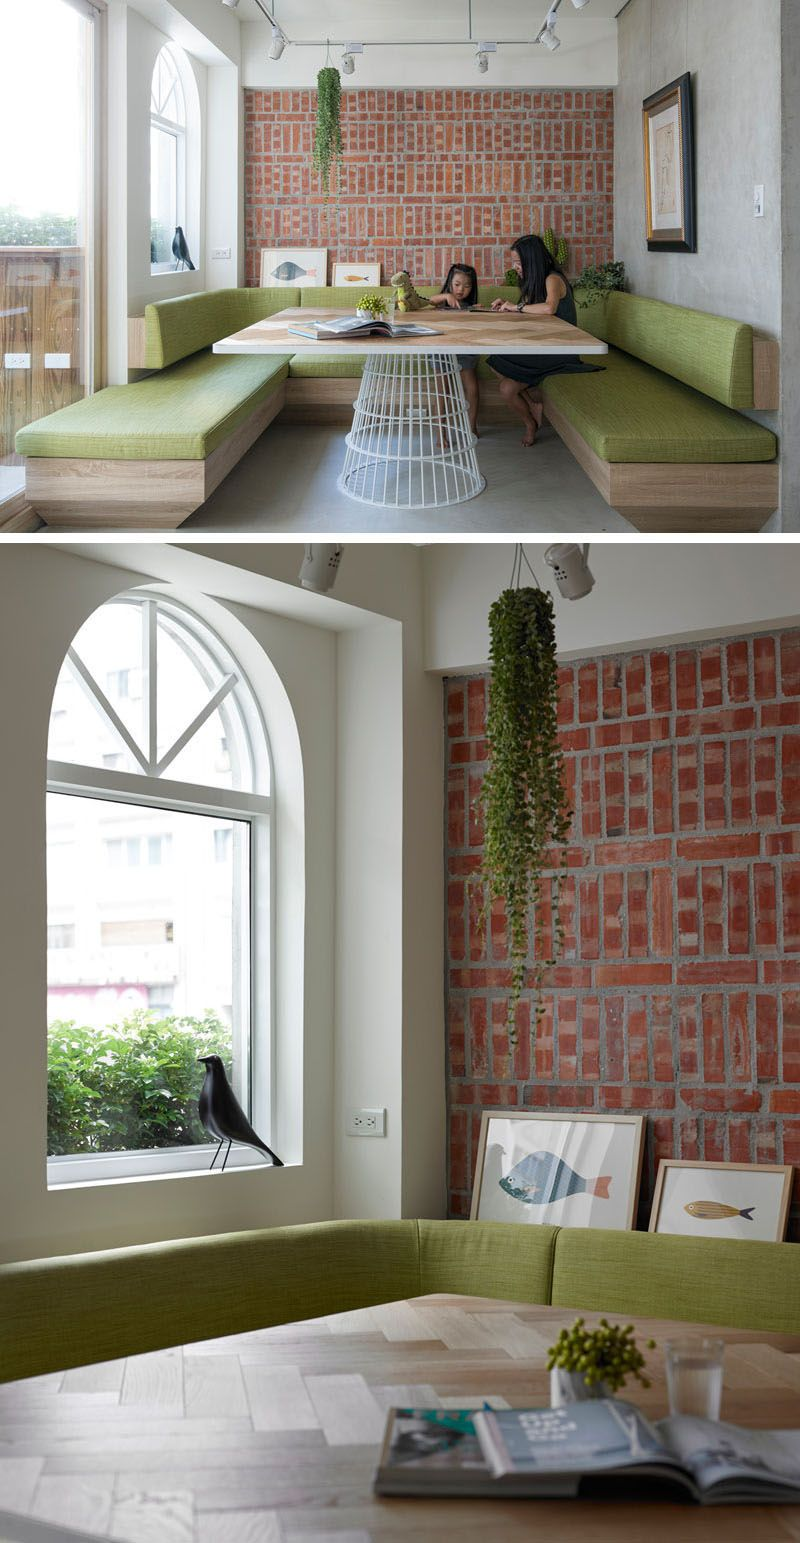 Dining Room Idea   Create A Built In Dining Nook (8 Pictures) | Light Wood  And Soft Green Cushions Soften Up The Brick Feature Wall, And Make This  Dining ...